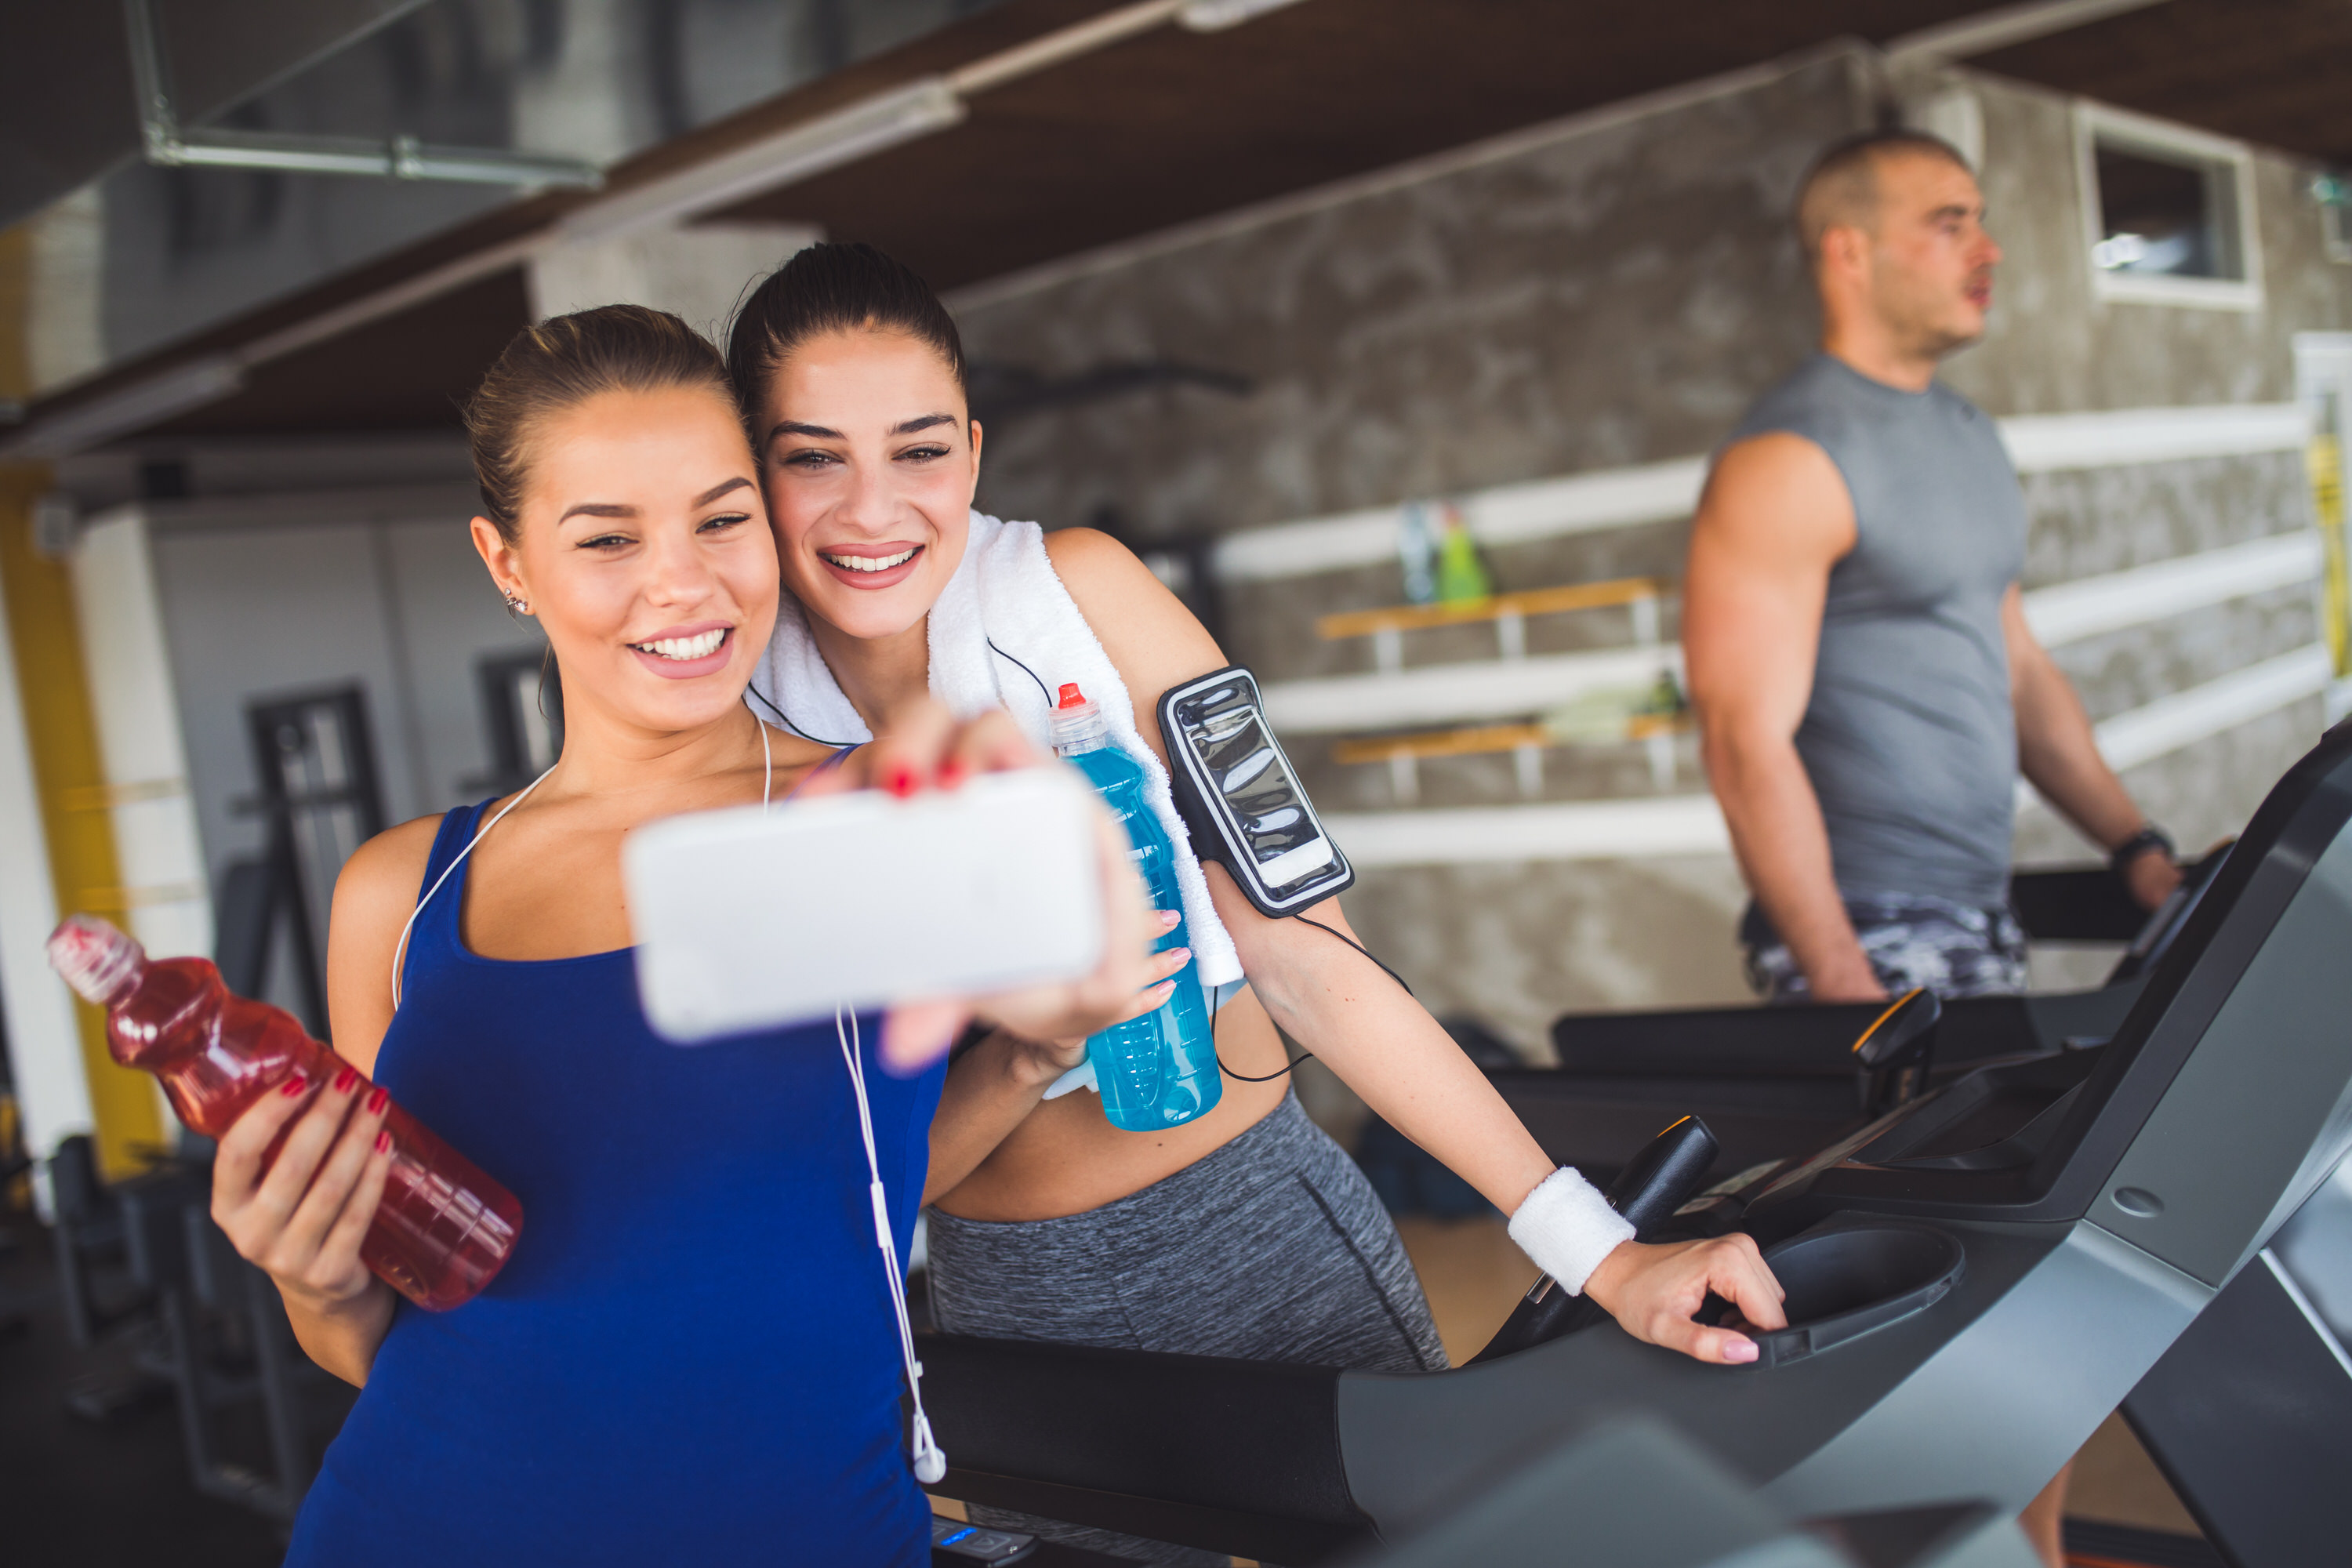 Two young women taking Selfie while working out at the gym.